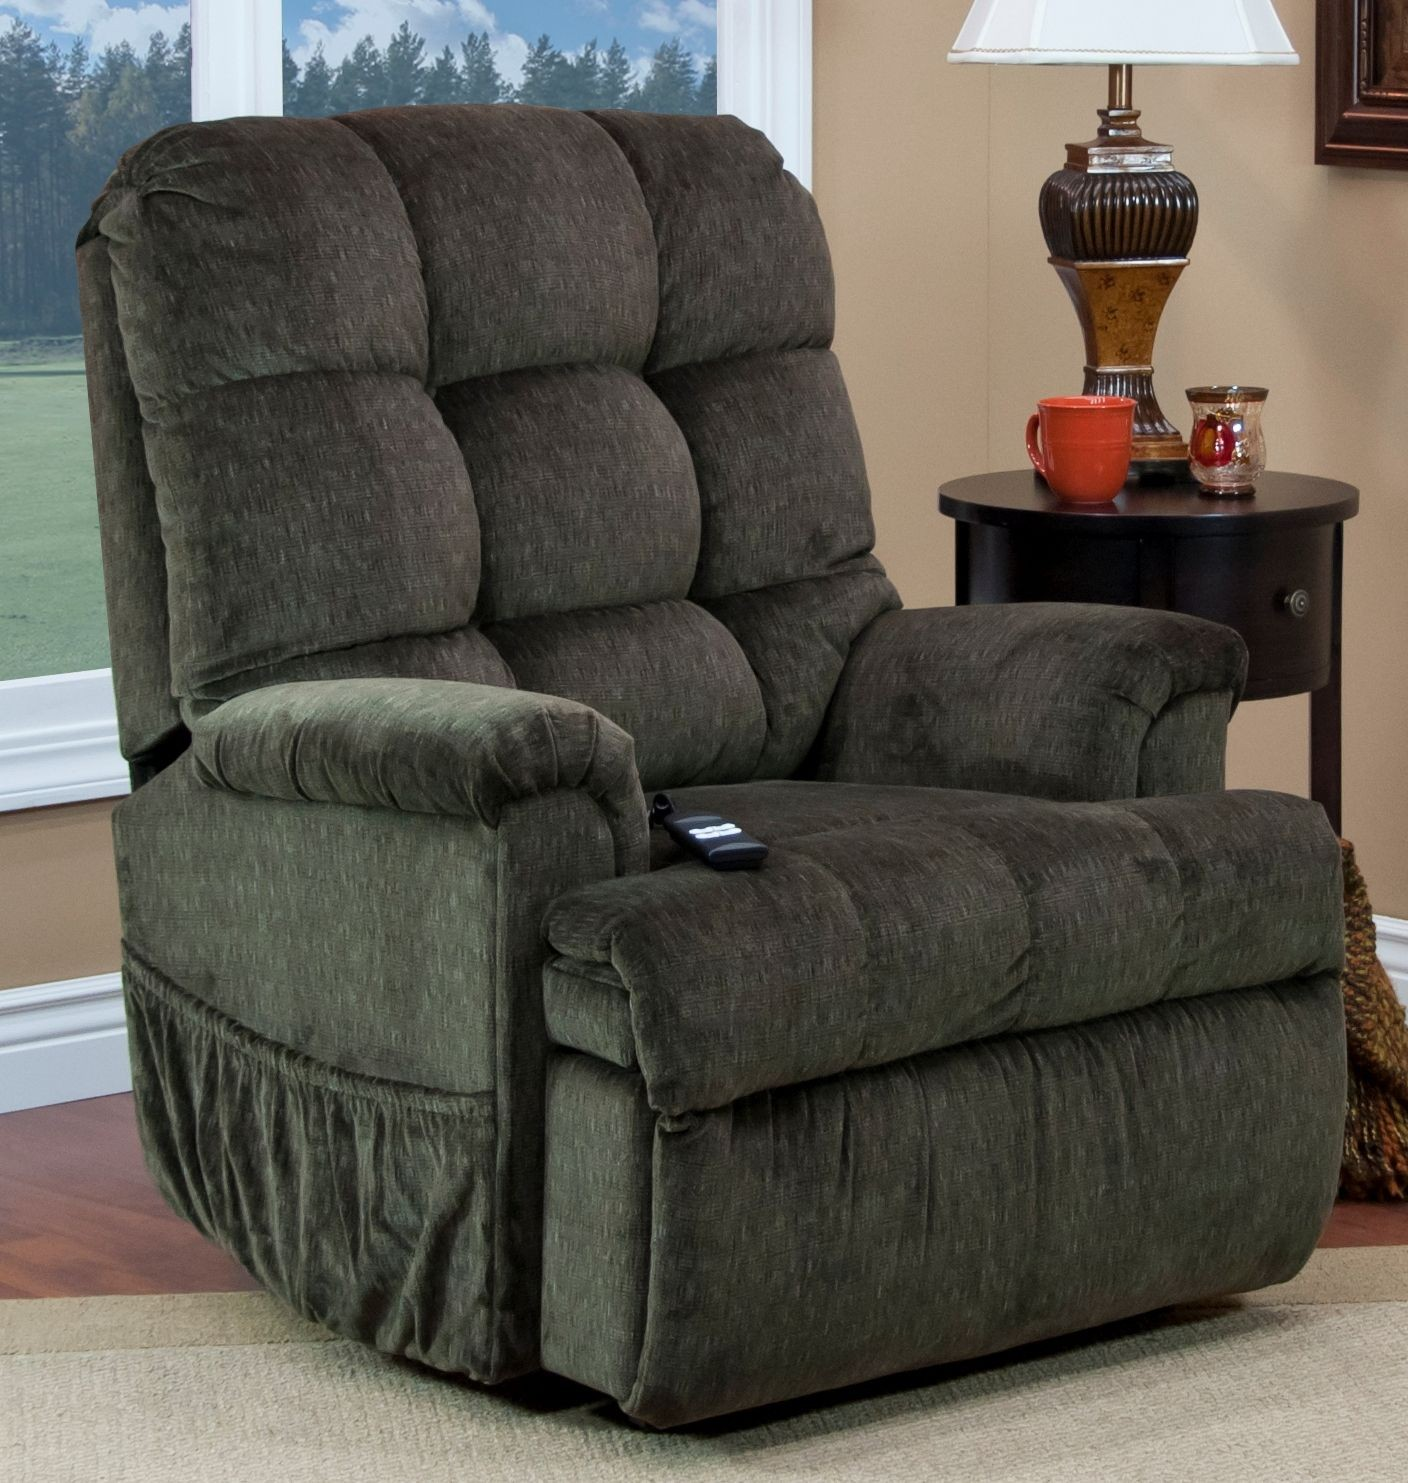 Med Lift Chairs Cabo Godiva Tufted Sleeper Reclining Lift Chair From Med